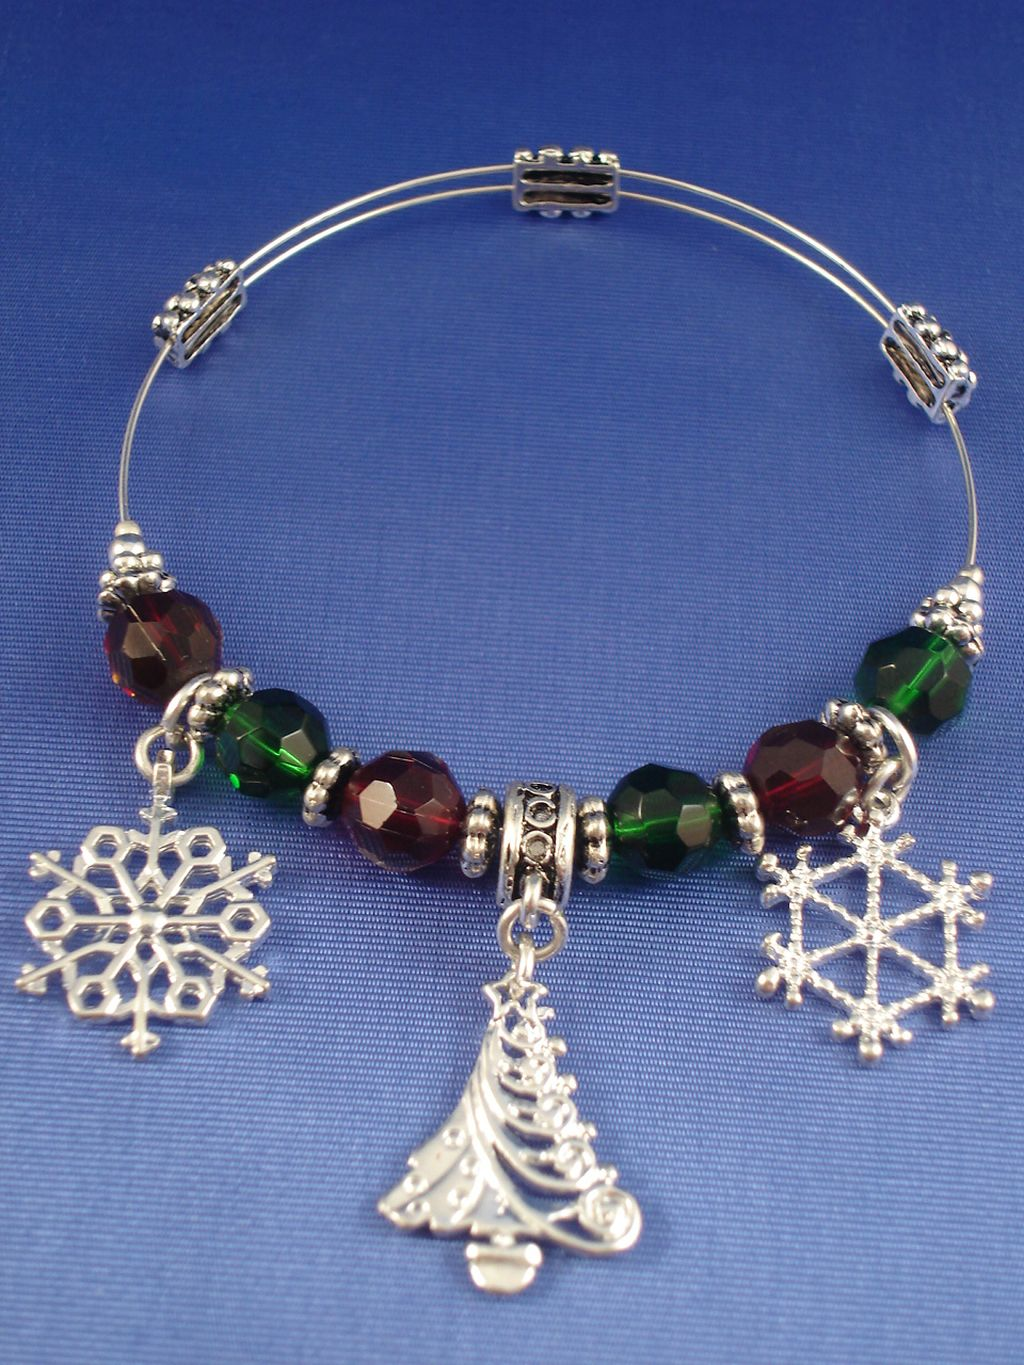 Christmas stretching bangle bracelet snow flakes tree